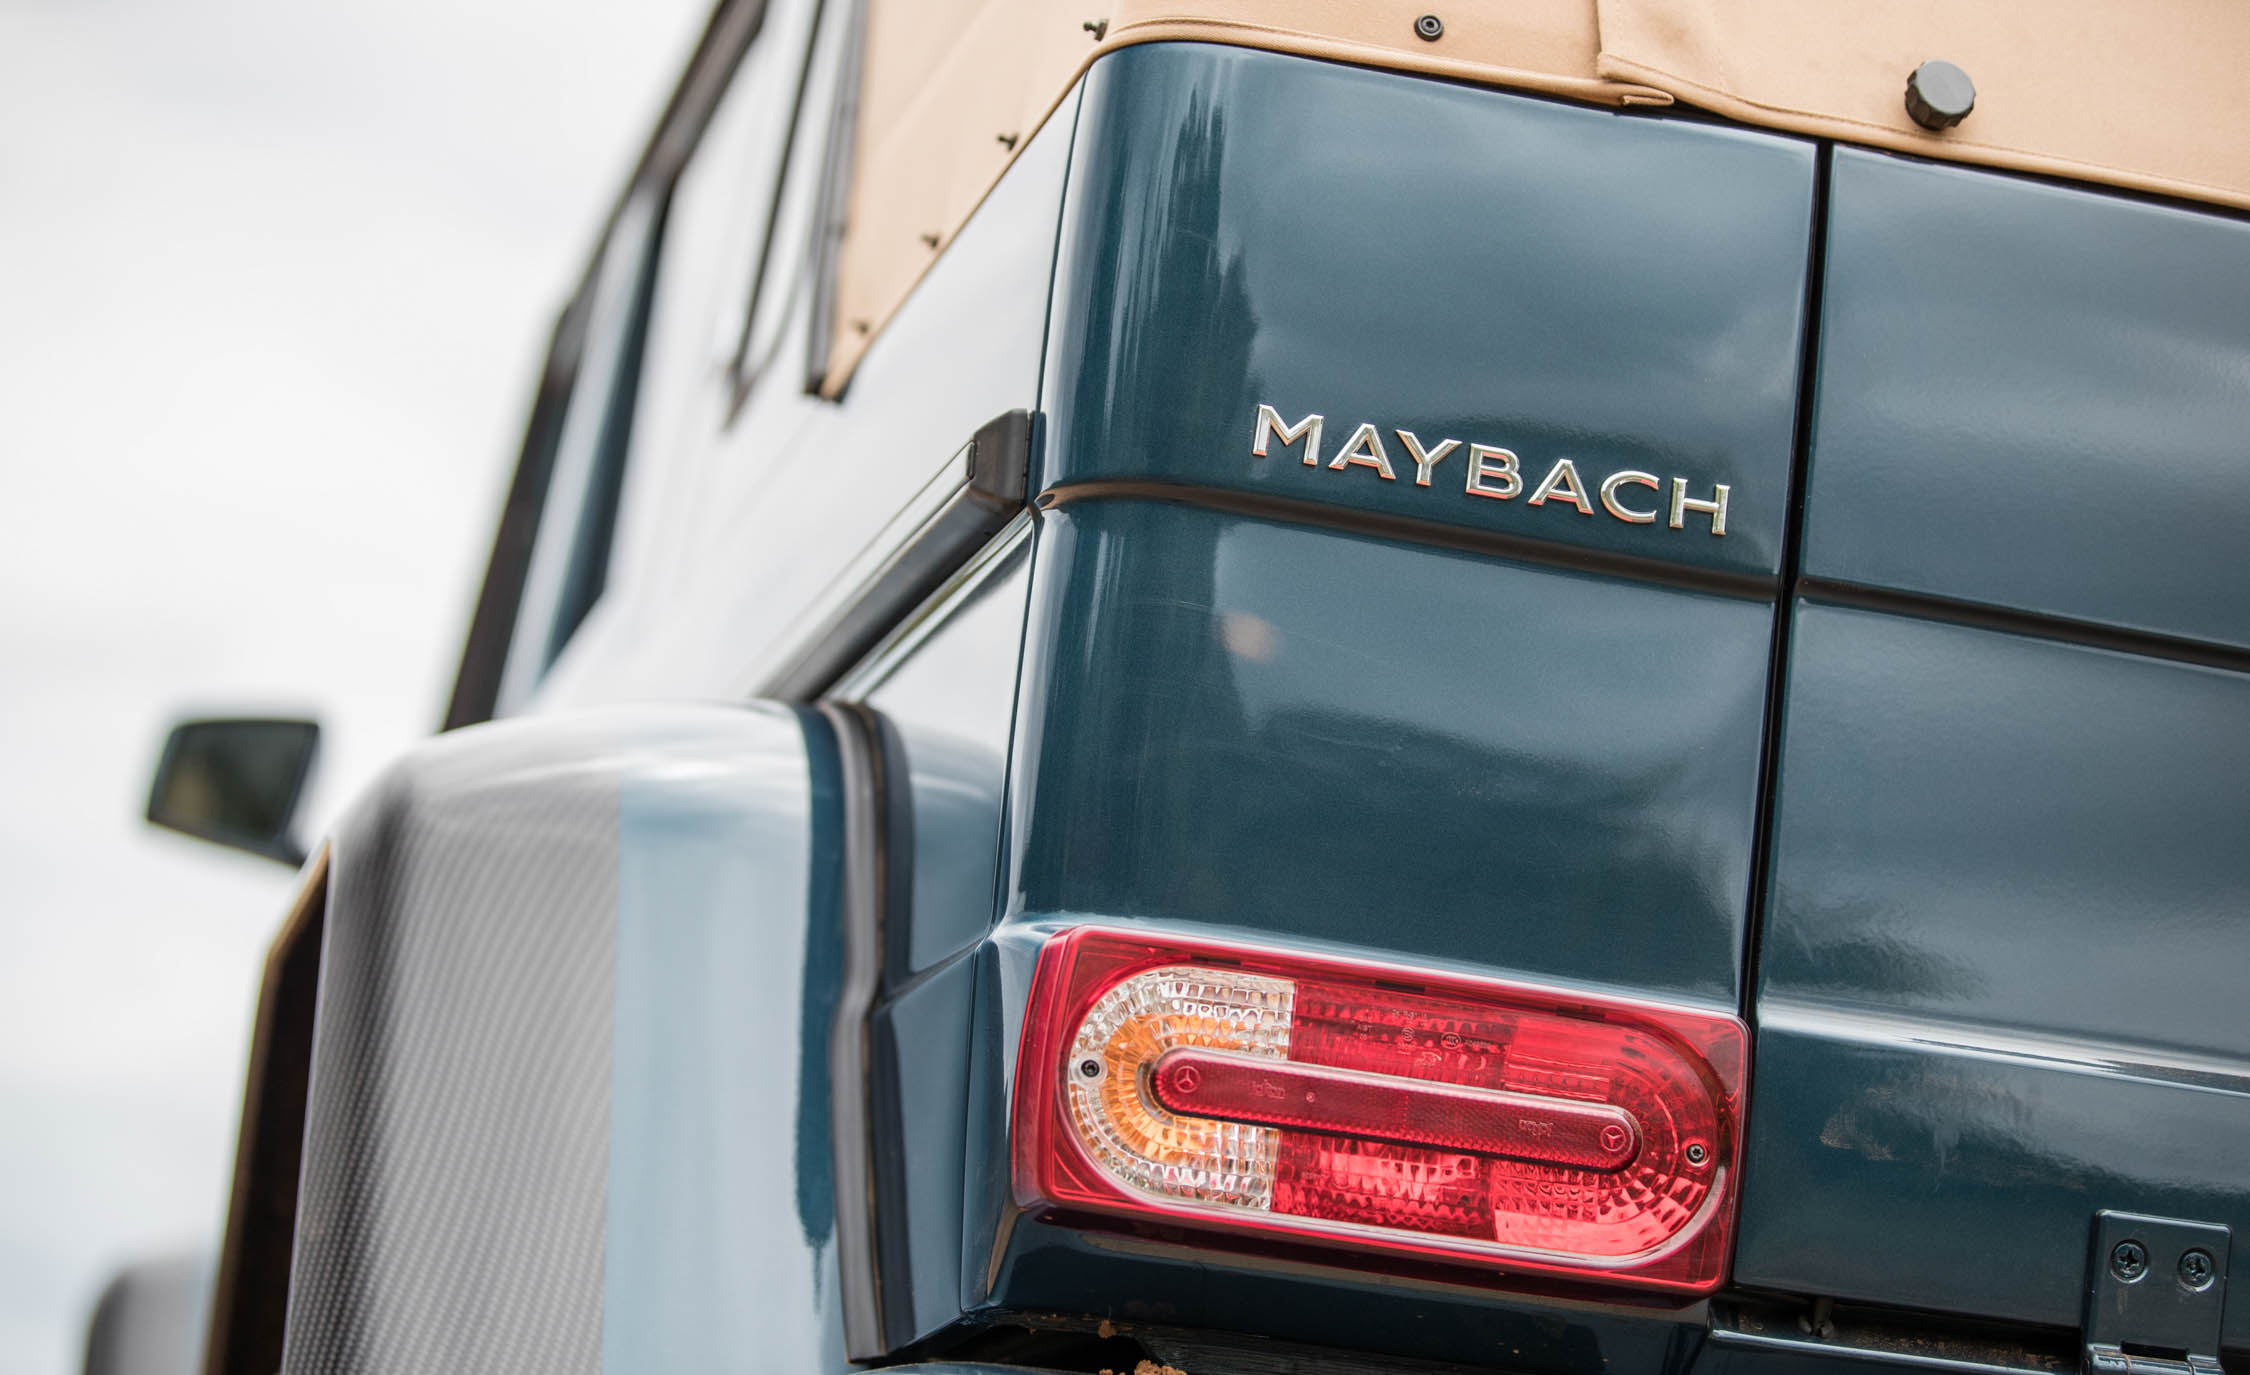 2018 Mercedes Maybach G650 Landaulet Exterior View Taillight (Photo 43 of 52)